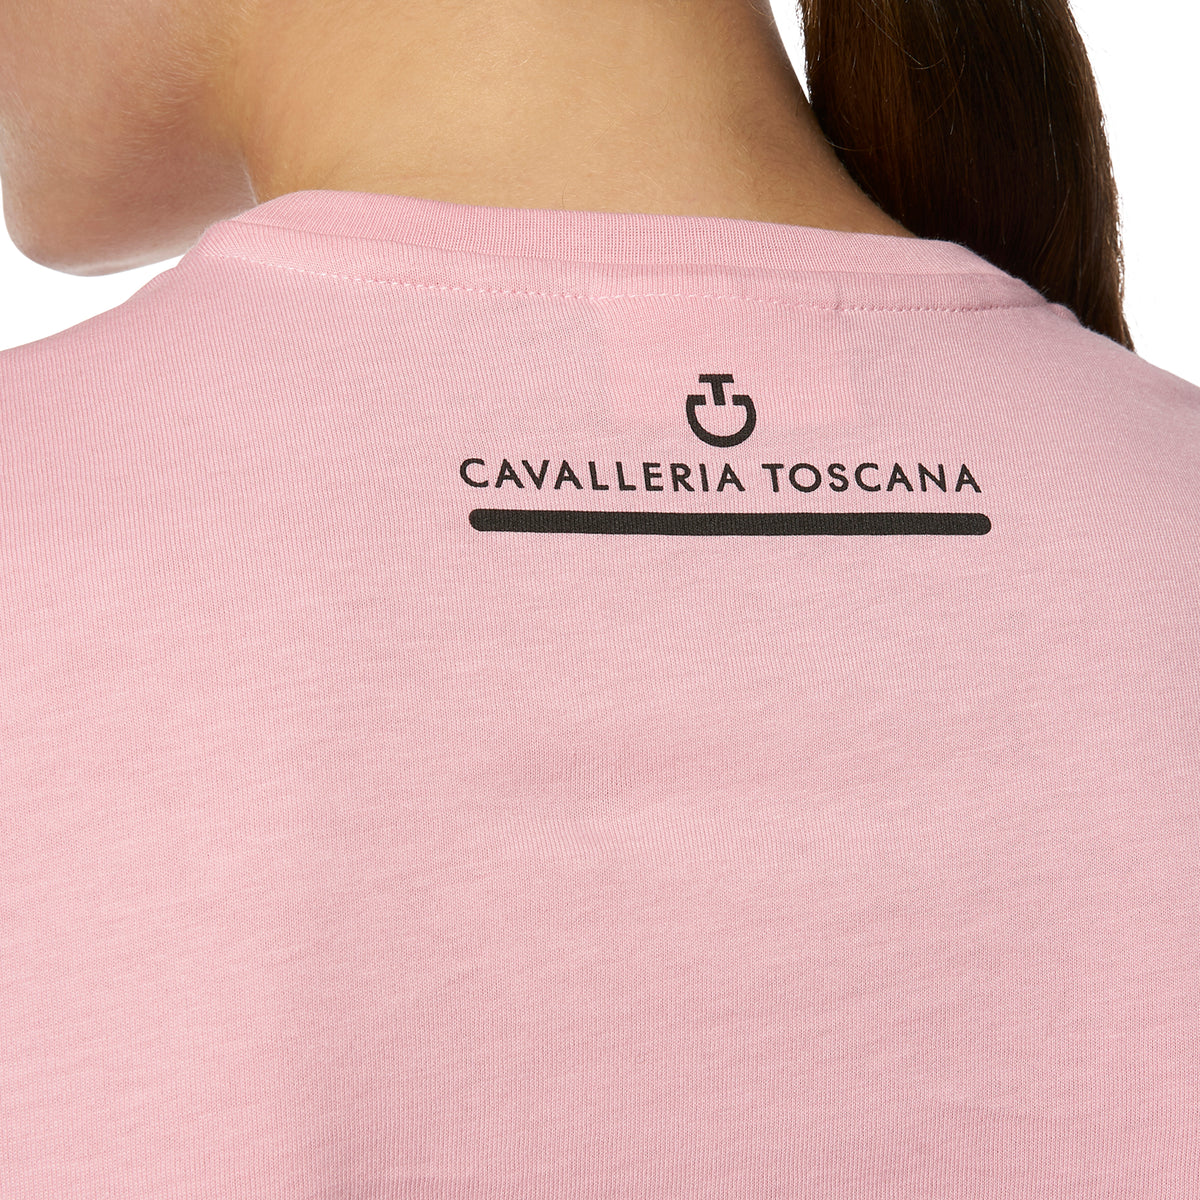 Cavalleria Toscana Women's Girls Love Horses Cotton T-Shirt